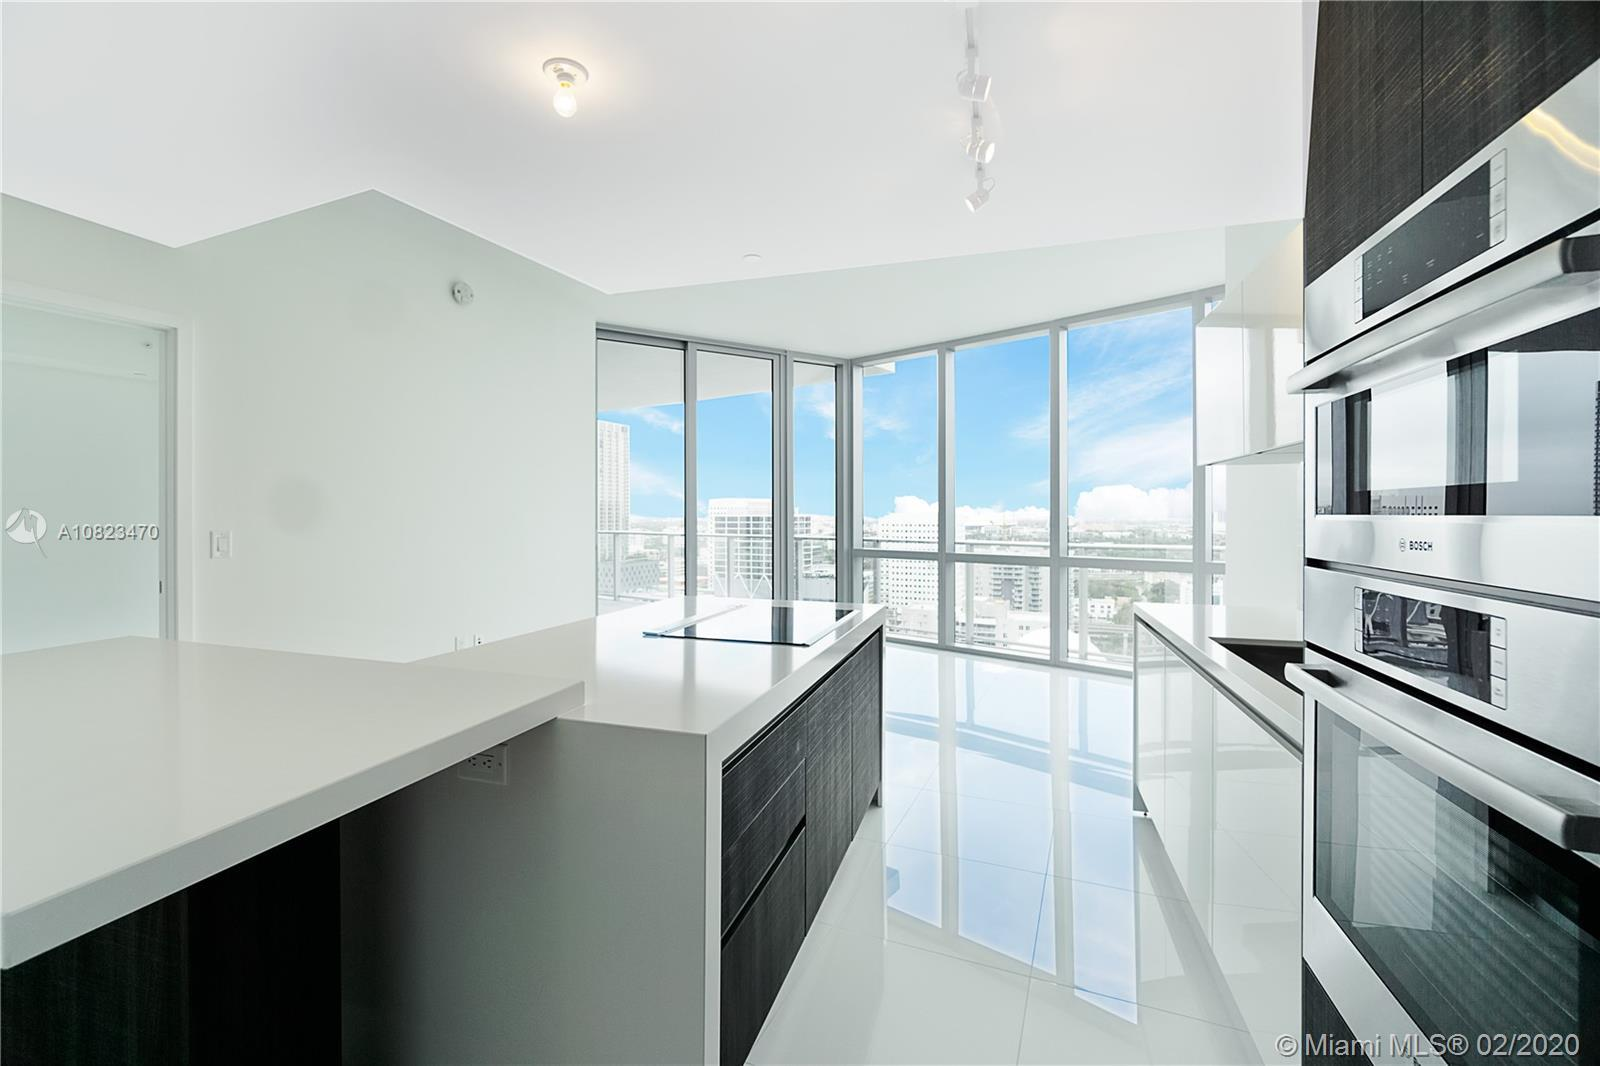 Beautiful new unit 1 bed + 1 den 2 full bath 1.491 sqf, very spacious, 10 foot ceilings with private